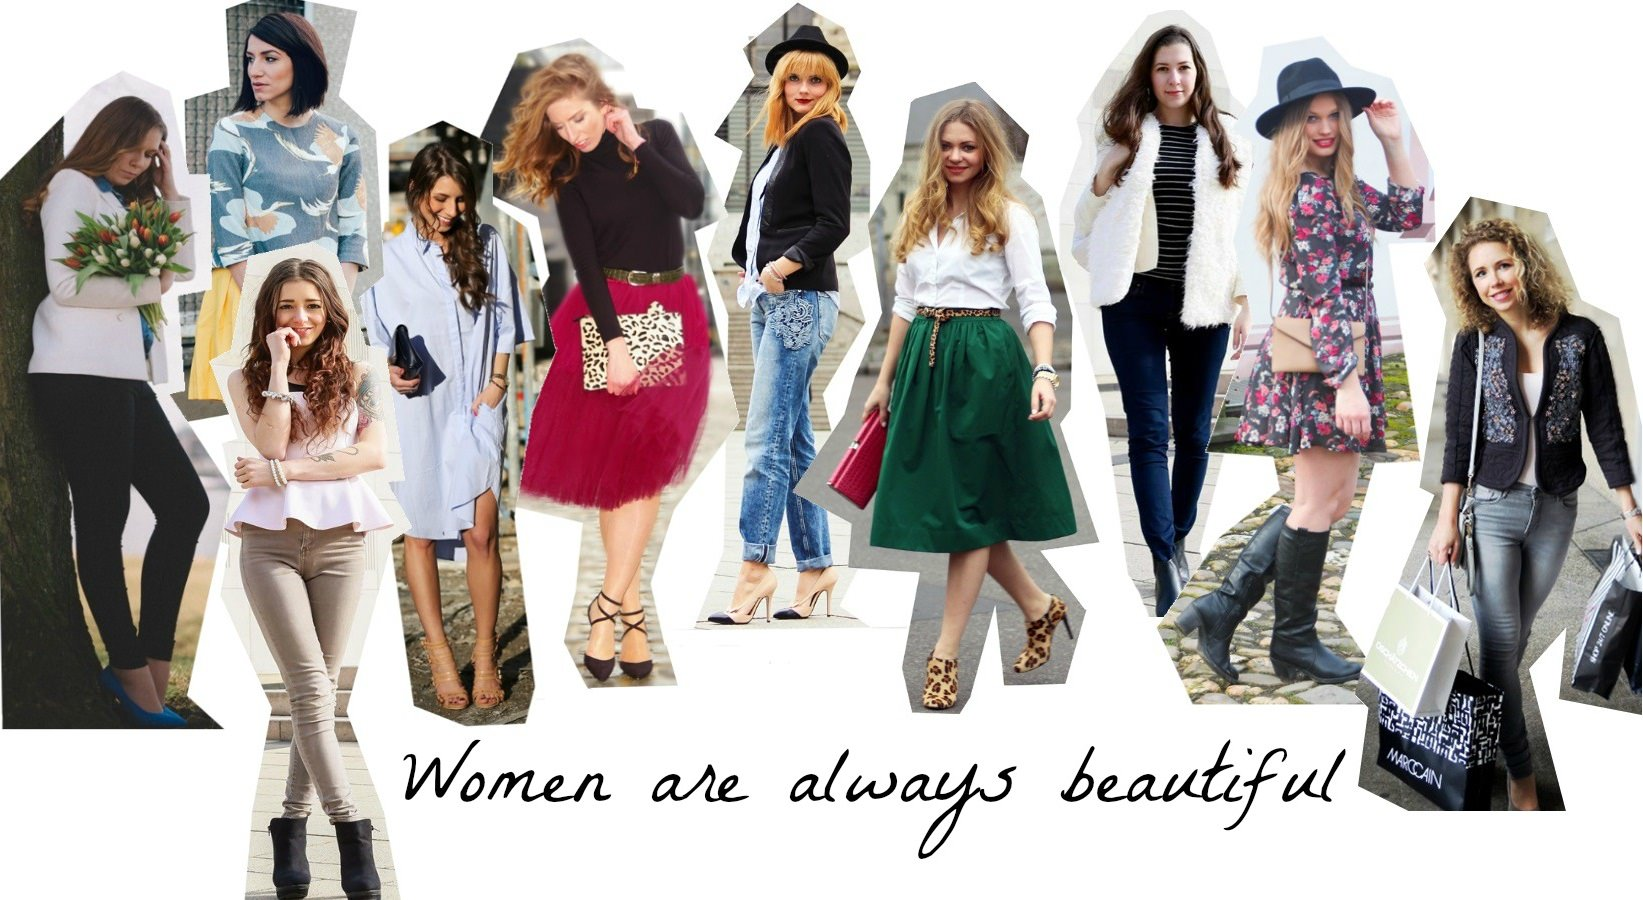 Weltfrauentag - Wome are always beautiful